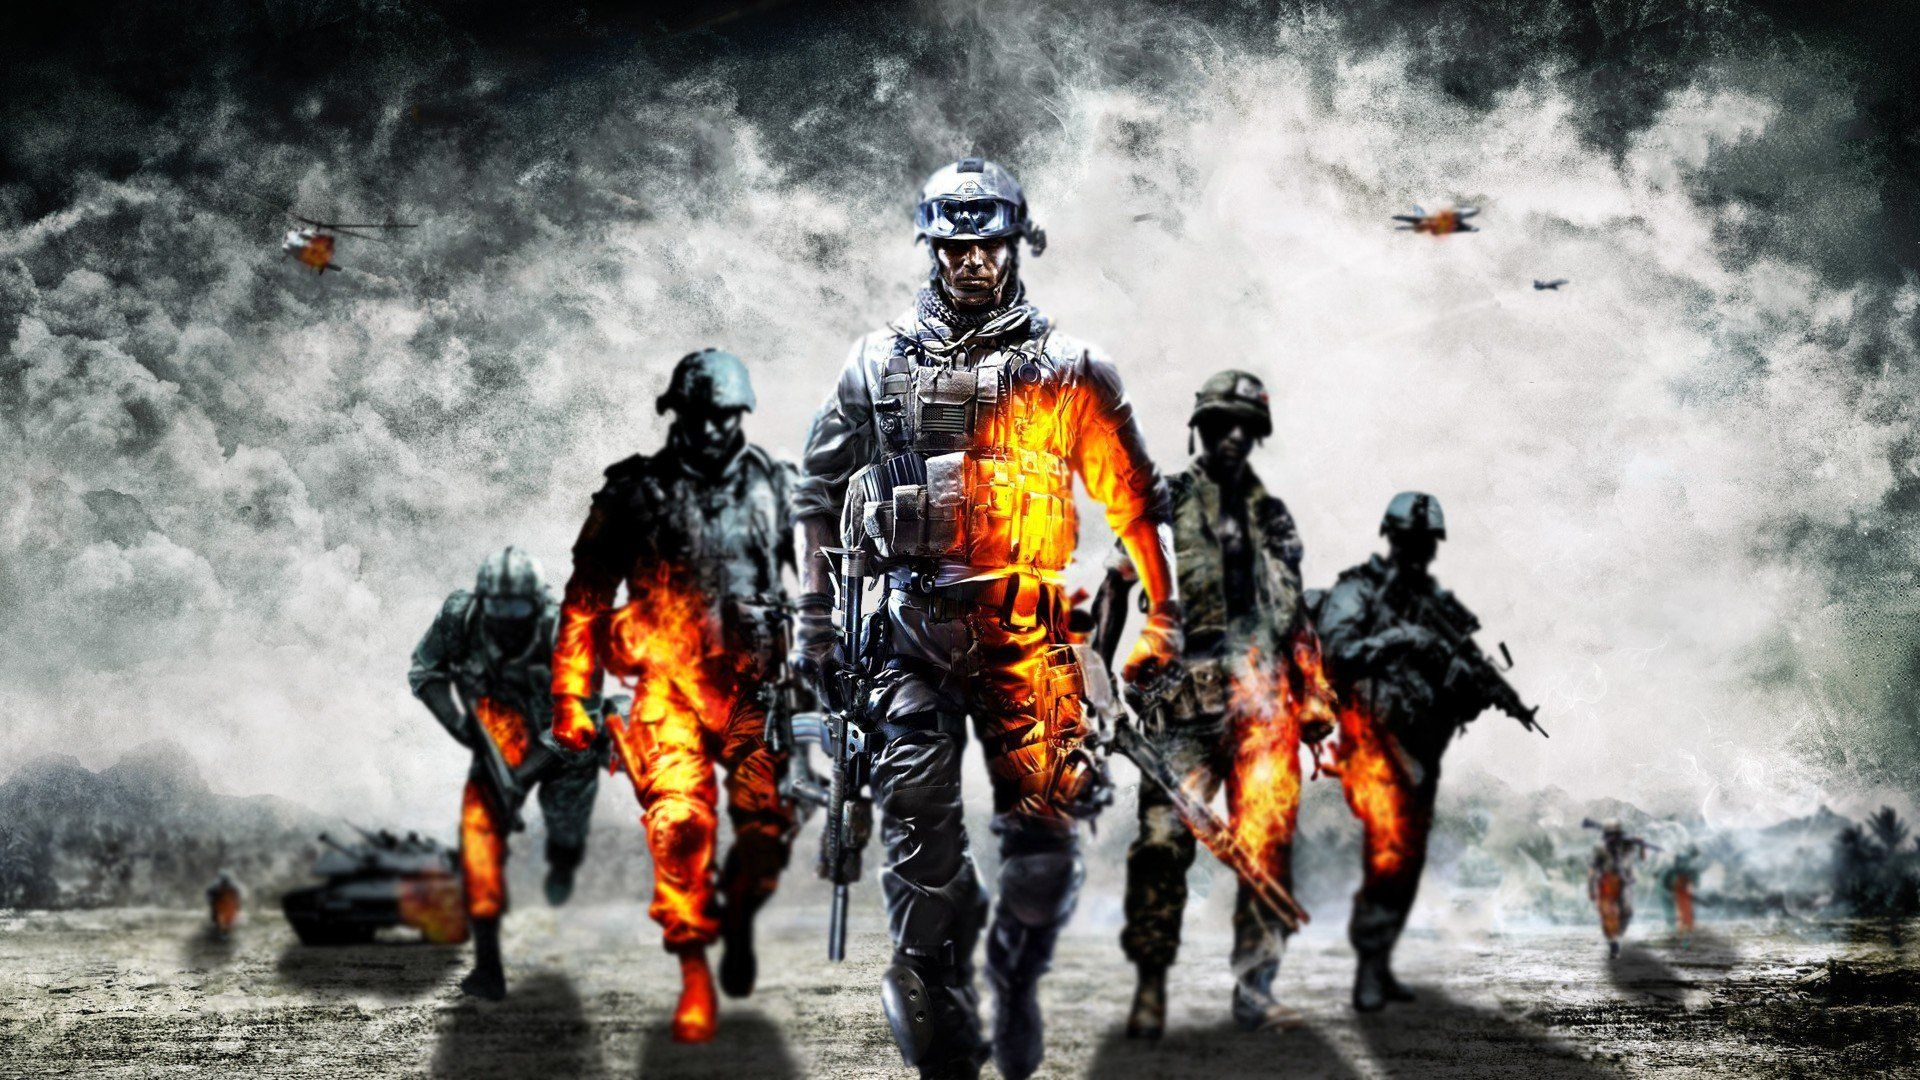 Battlefield Battlefield 3 Battlefield Bad Company 2 B With Images